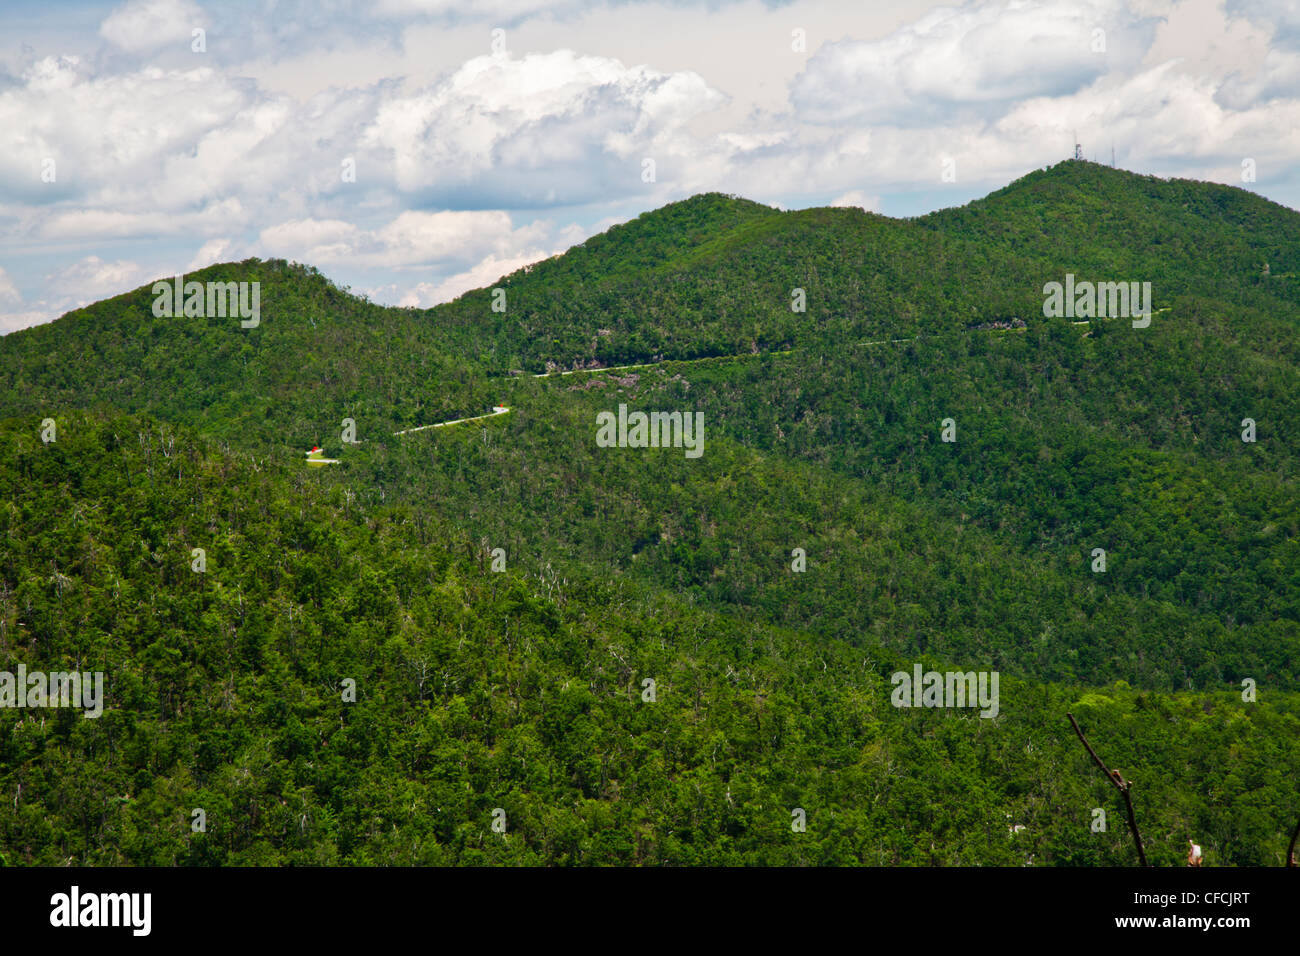 The Great Smoky Mountains viewed from the Blue Ridge Parkway in western North Carolina in early summer. Stock Photo